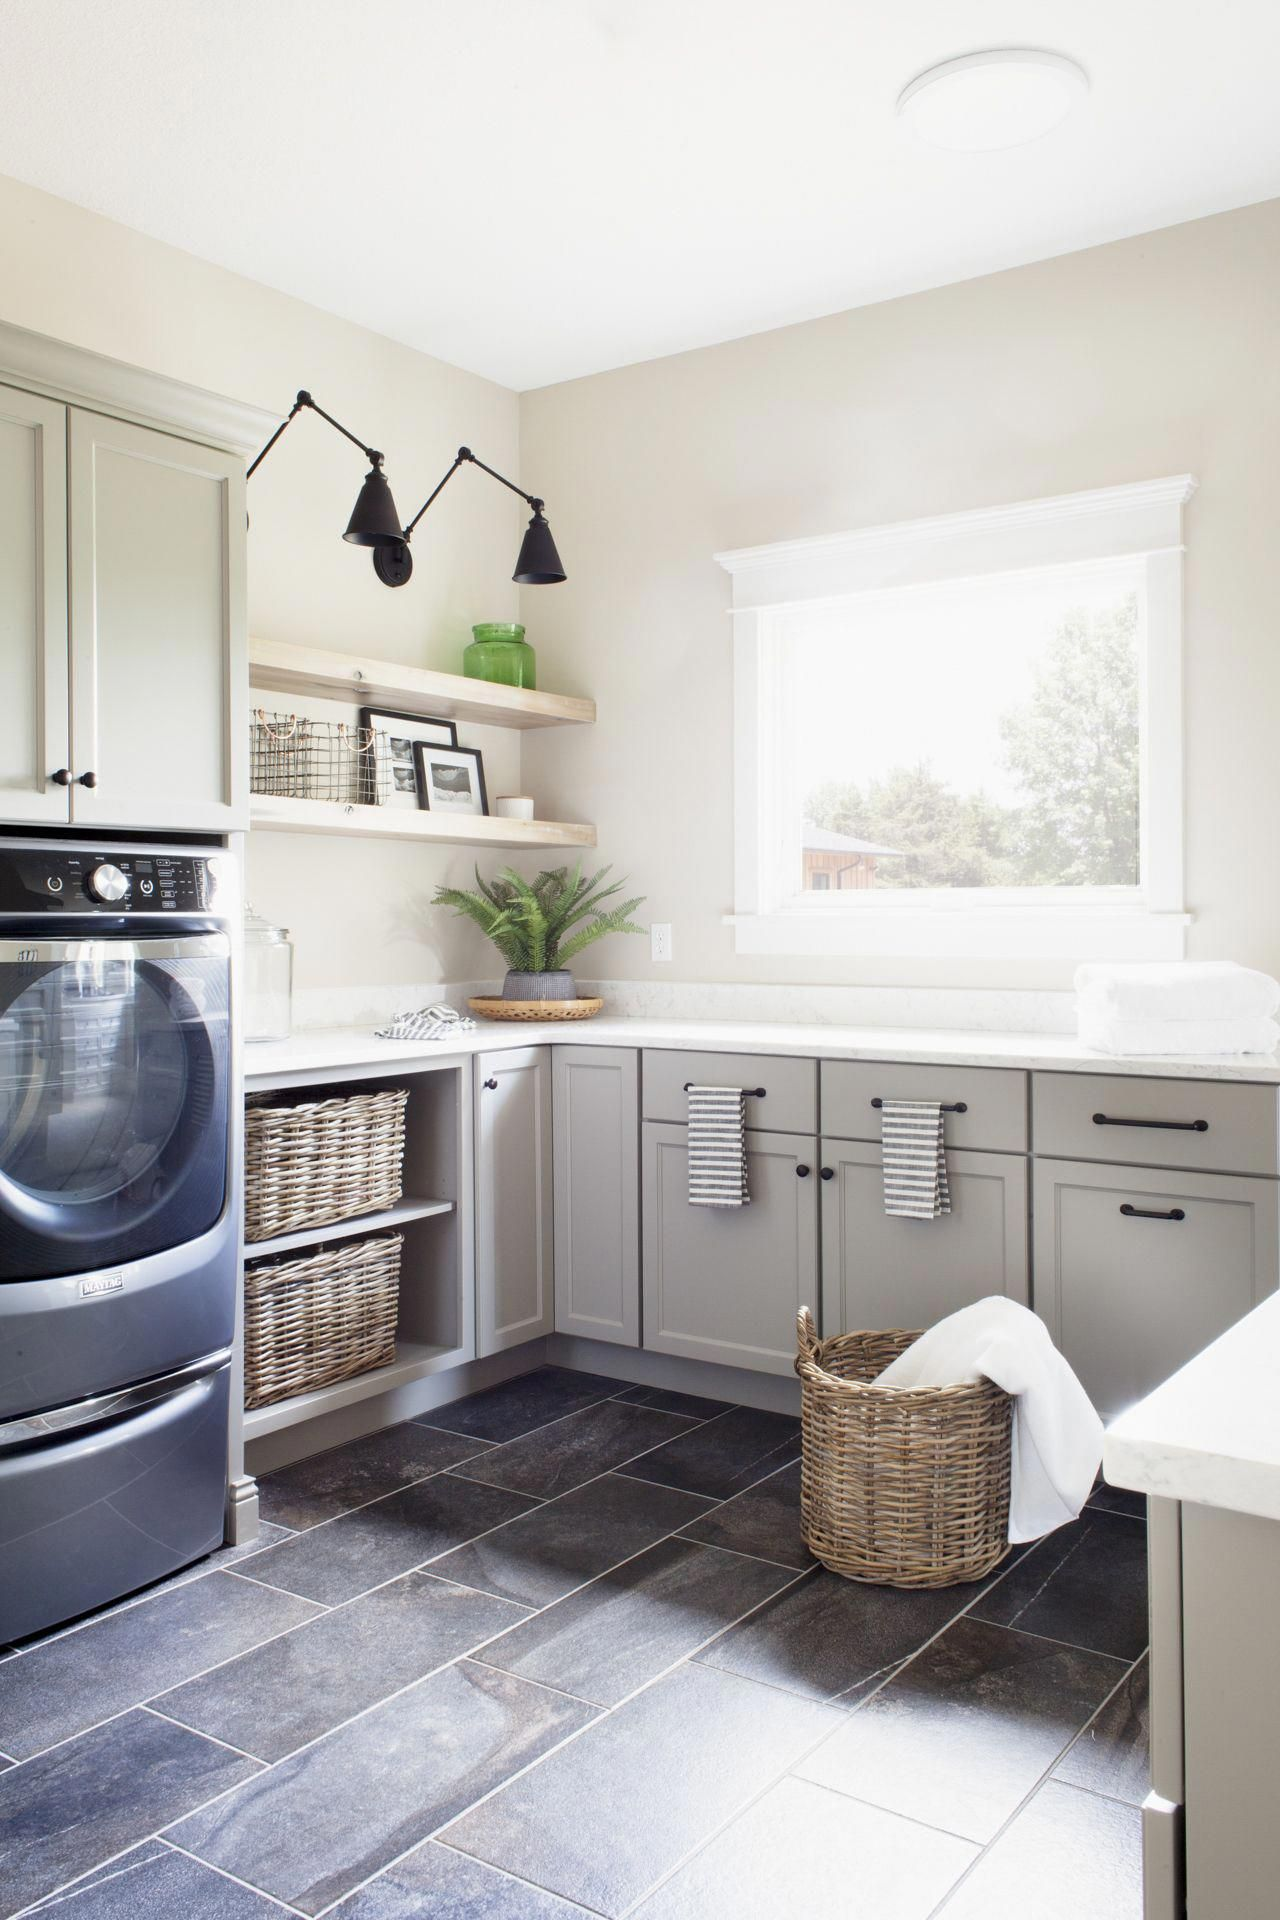 Lakeview Home Laundry Room Reveal Chelsea Gray Cabinets By Benjamin Moore Black Wall Sconces Laundry Room Design Laundry Room Decor Diy Laundry Room Decor